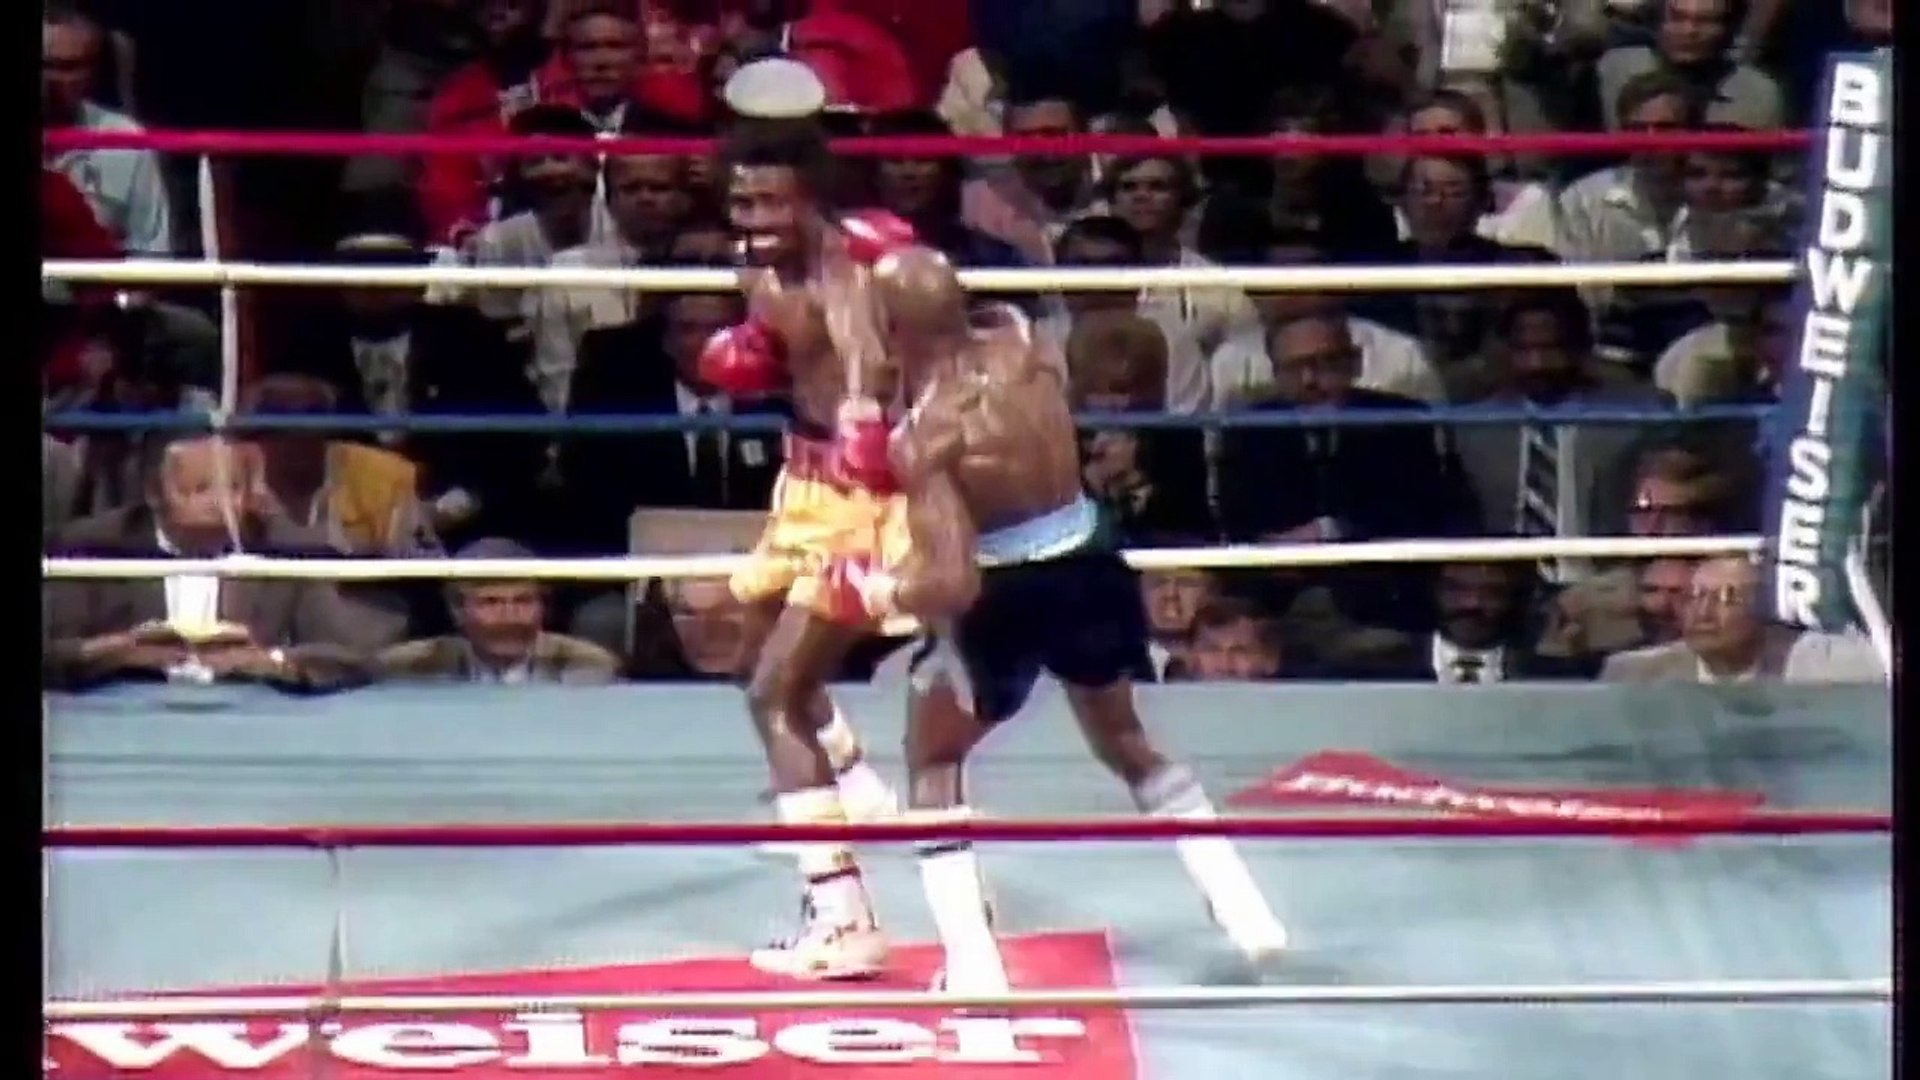 Boxing Motivation - The reality of Boxing